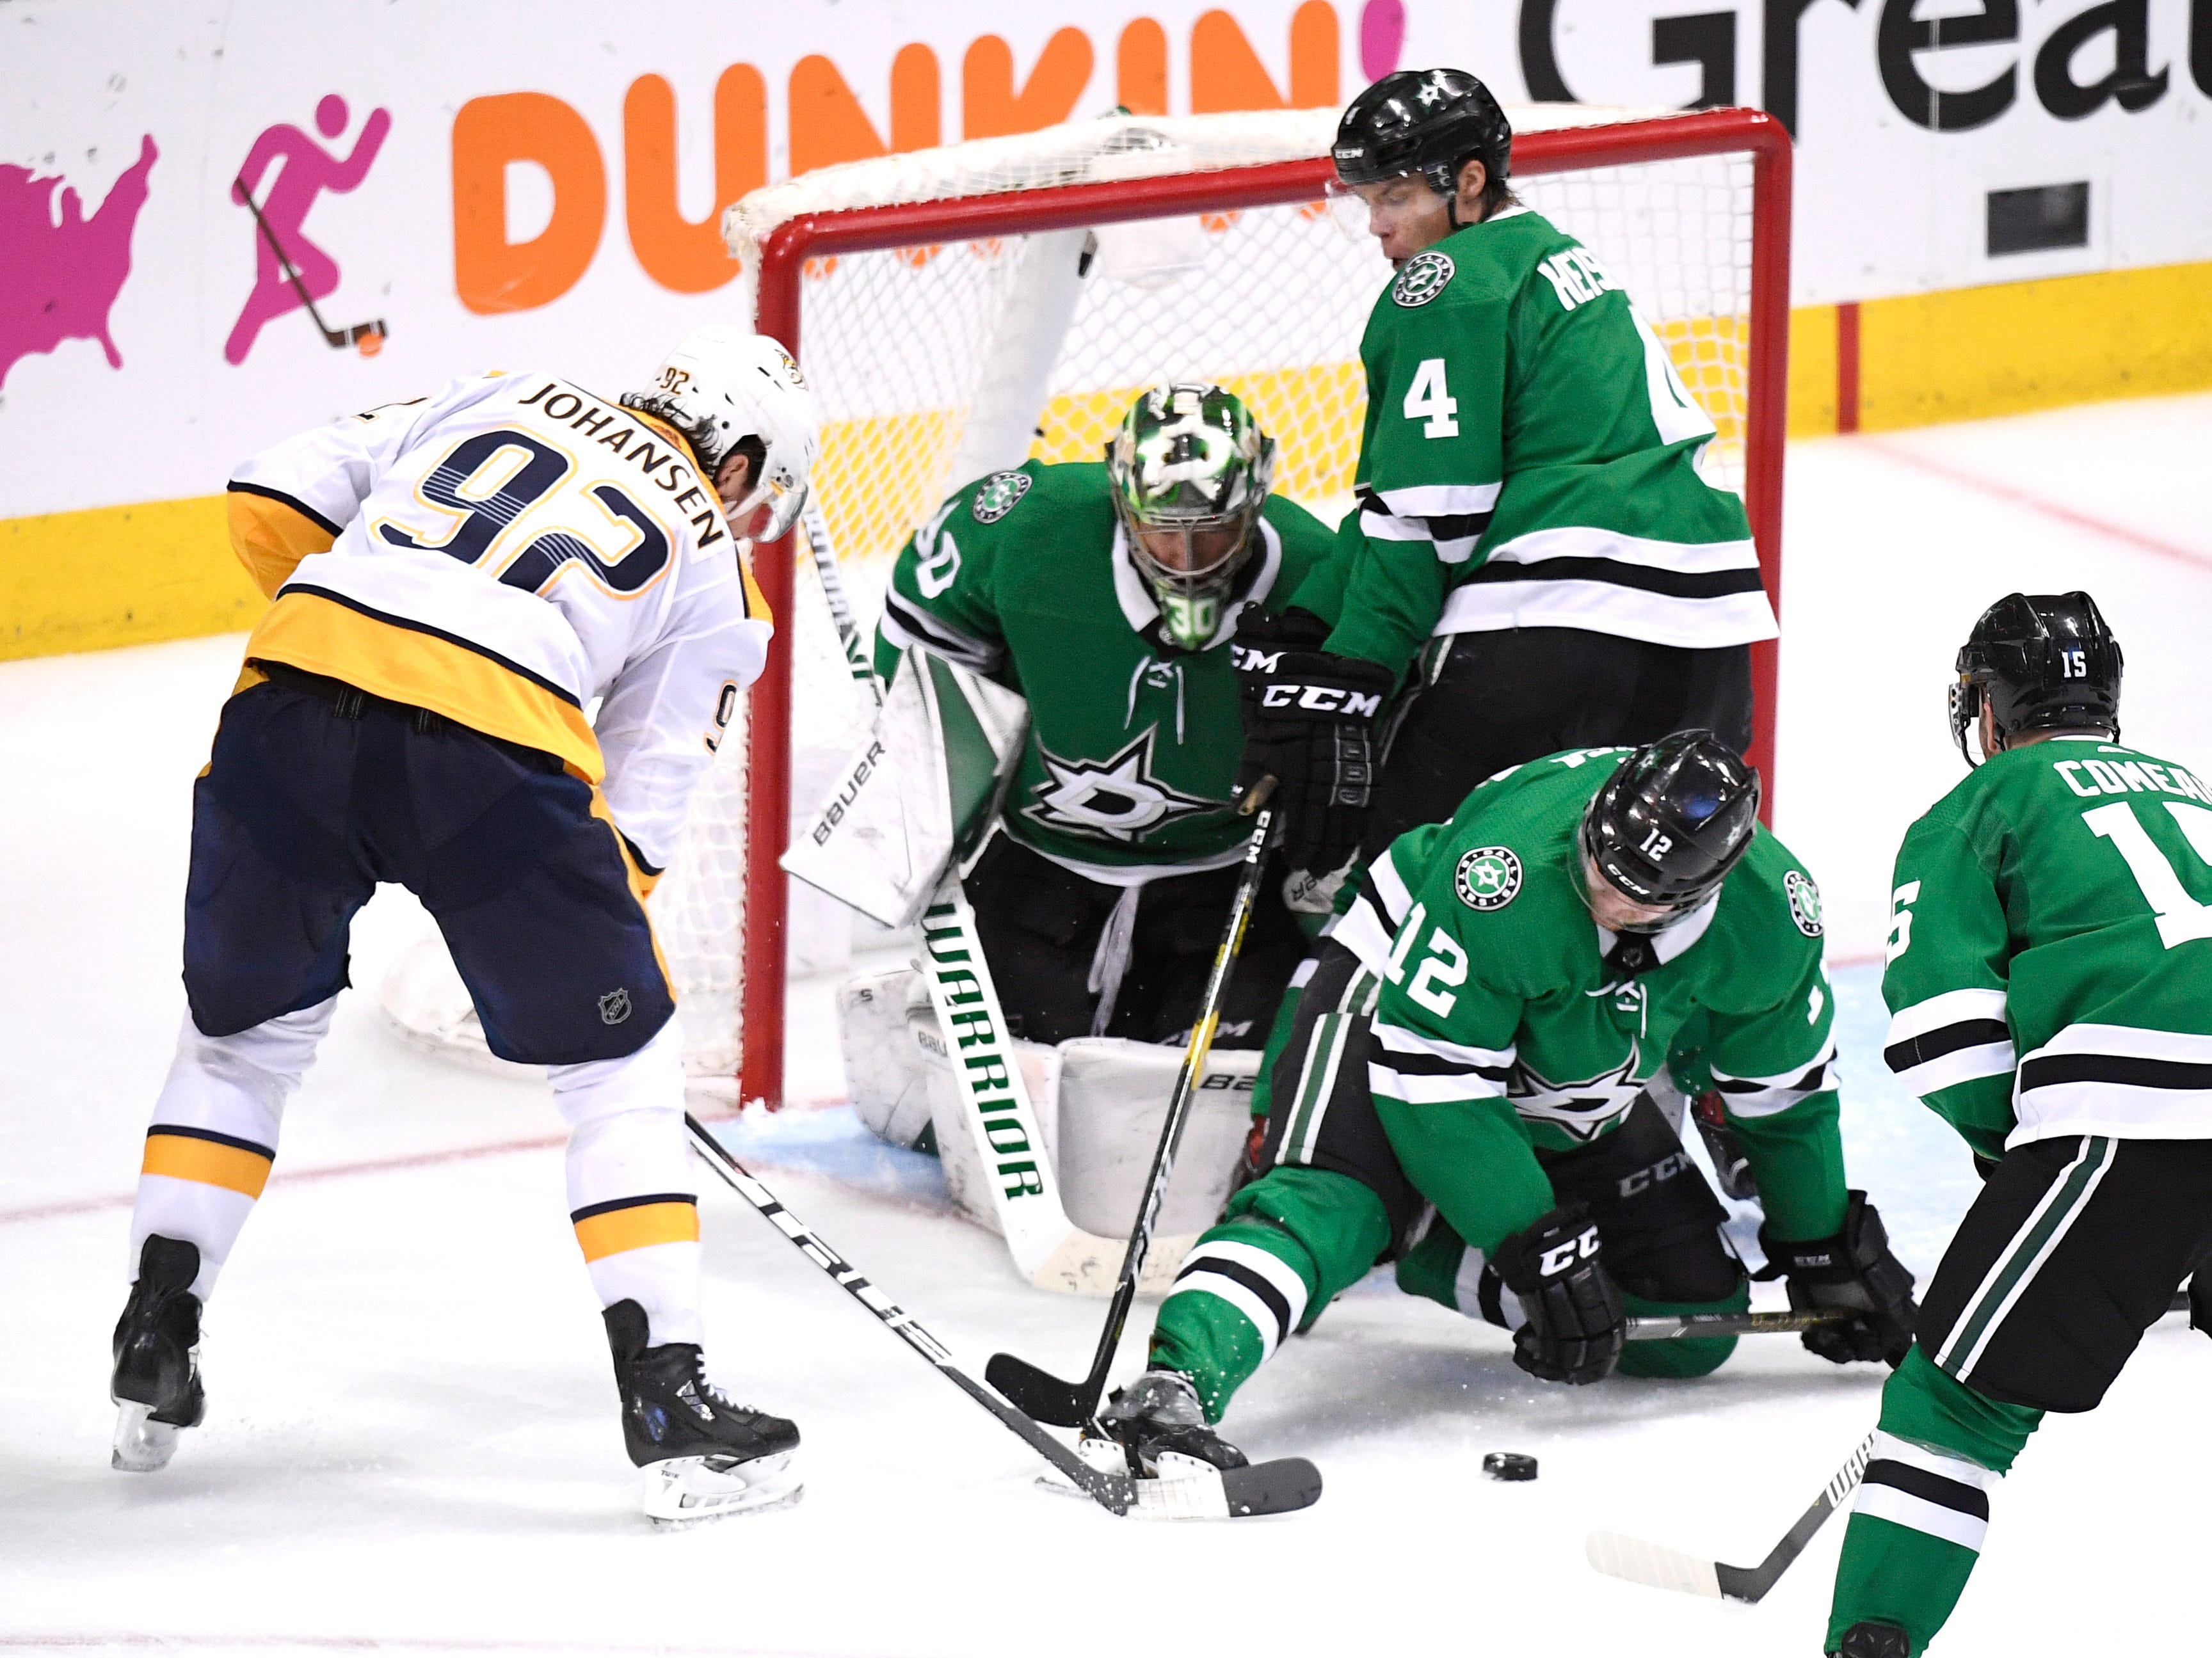 Dallas Stars goaltender Ben Bishop (30) defends the net as Nashville Predators center Ryan Johansen (92) tries to score during overtime of the divisional semifinal game at the American Airlines Center in Dallas, Texas, Monday, April 22, 2019.